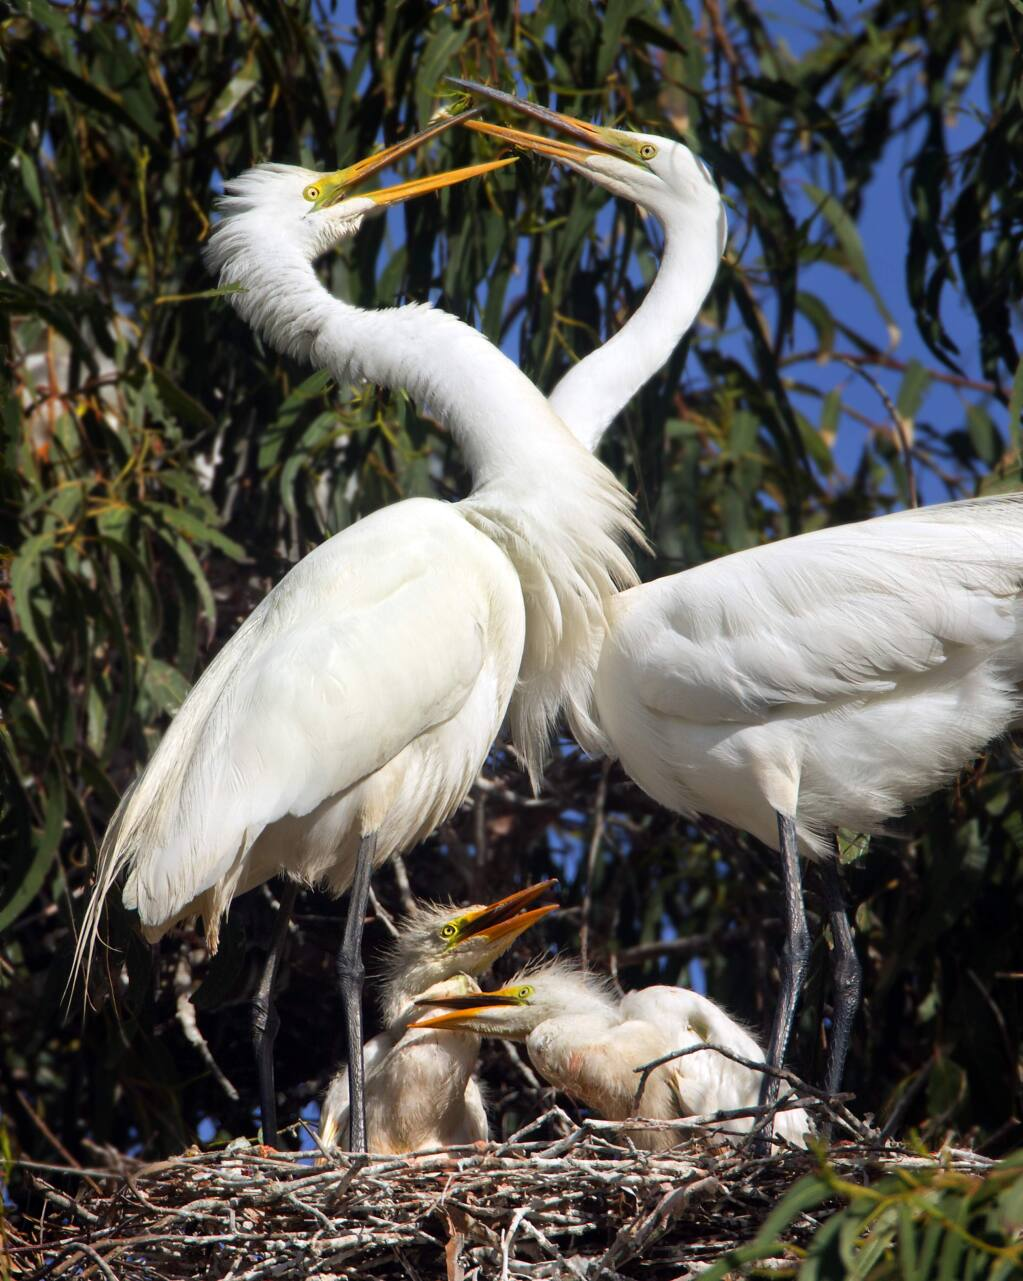 More than 300 students from Lincoln Elementary School in Santa Rosa visited their local rookery in eucalyptus trees along Ninth St. A nesting pair of Great White Egrets great each other over their young chicks on Friday. (photo by John Burgess/The Press Democrat)